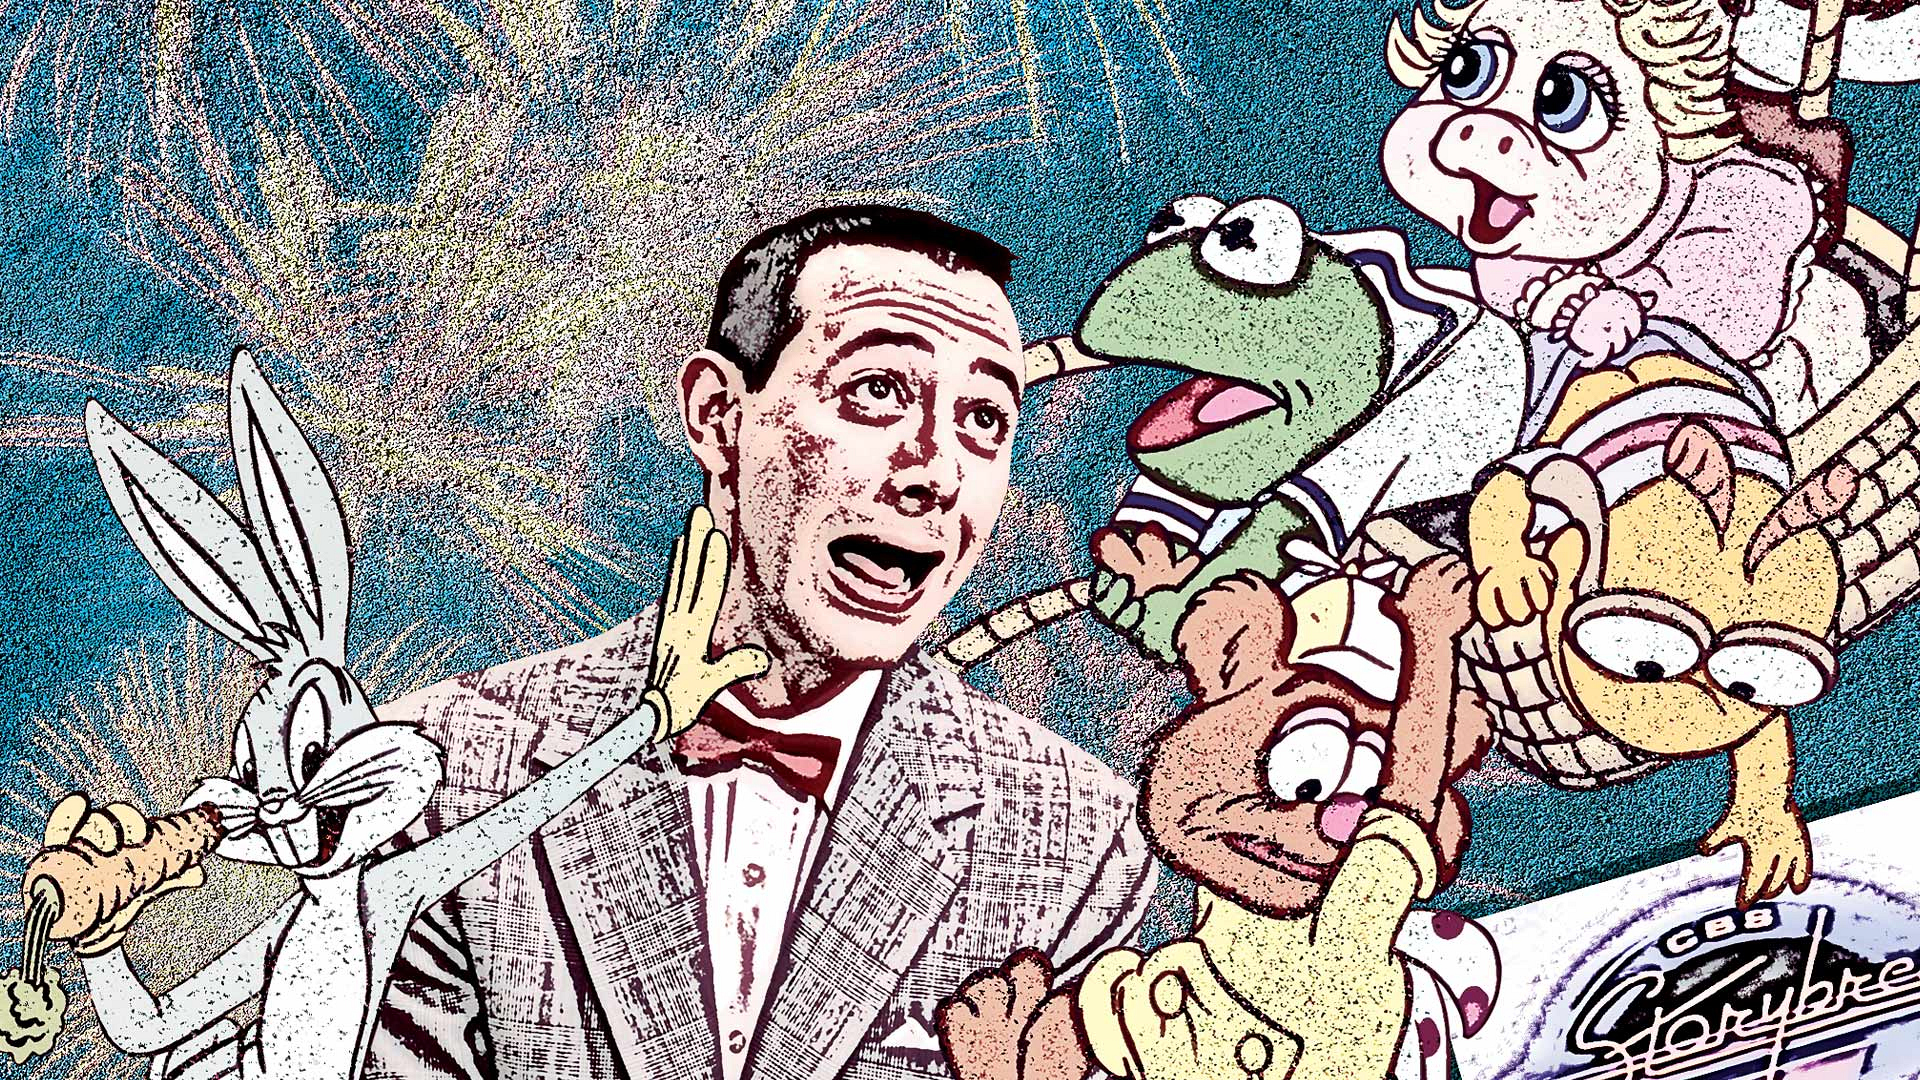 From Bugs Bunny and Pee-Wee Herman to Muppet Babies and a certain Kangaroo, we're celebrating the best in children's television.